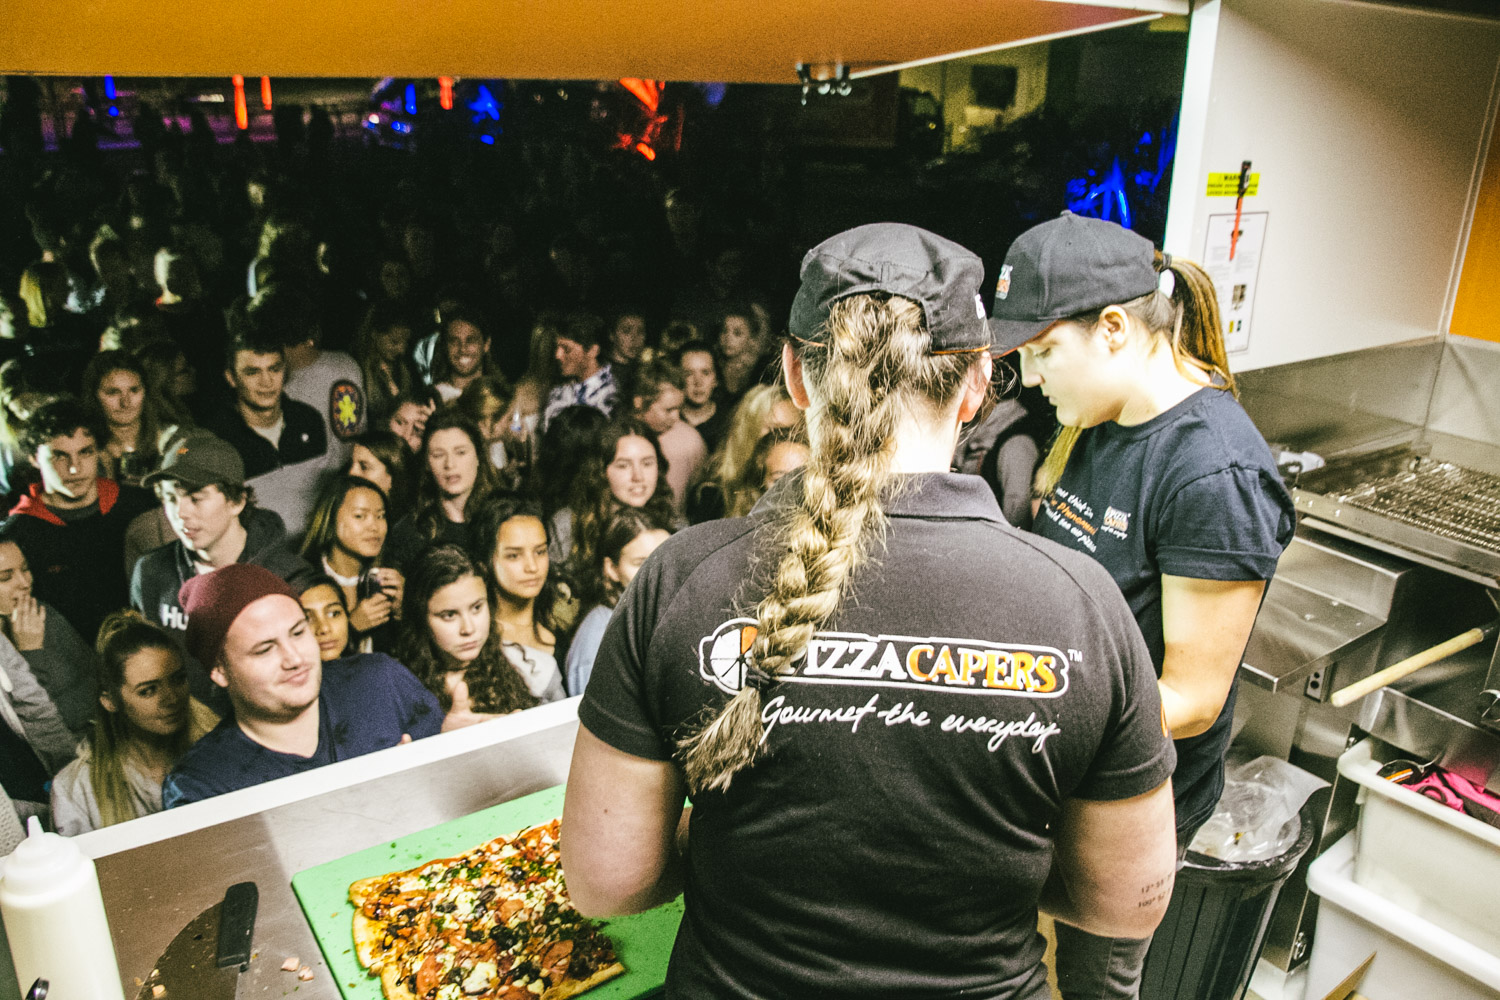 SPA_270717_PIZZACAPERS_-35.jpg